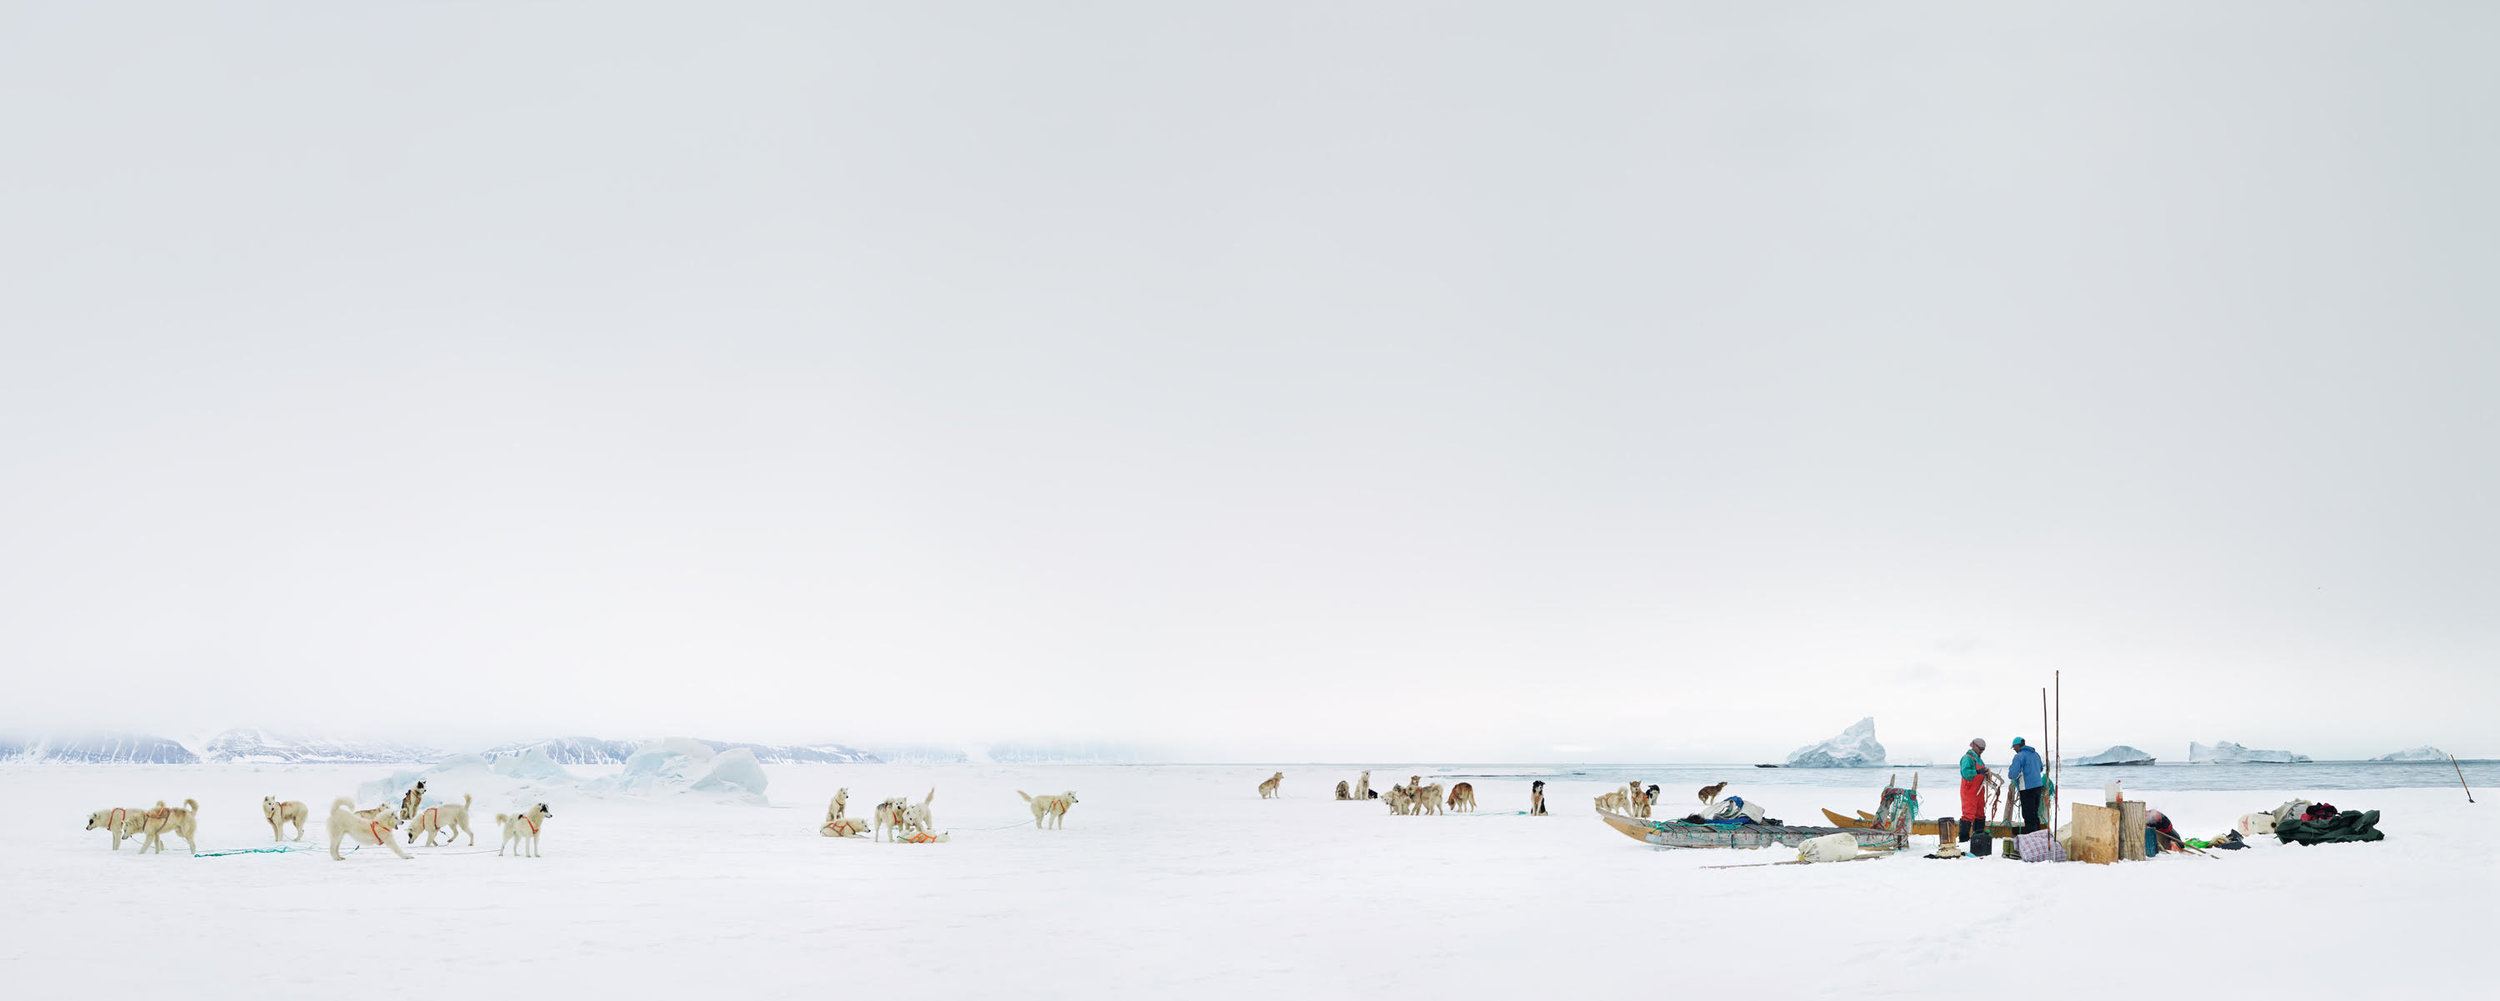 """""""Panorama After Hunt."""" © Corina Gamma, Breaking Down the Sea Ice Camp, north east of Siorapaluk, Greenland 2018, 130 inches Panorama.  Subsistence hunters Qillaq Danielsen and Peter Avike are taking down their sea ice camp after a hunting trip."""